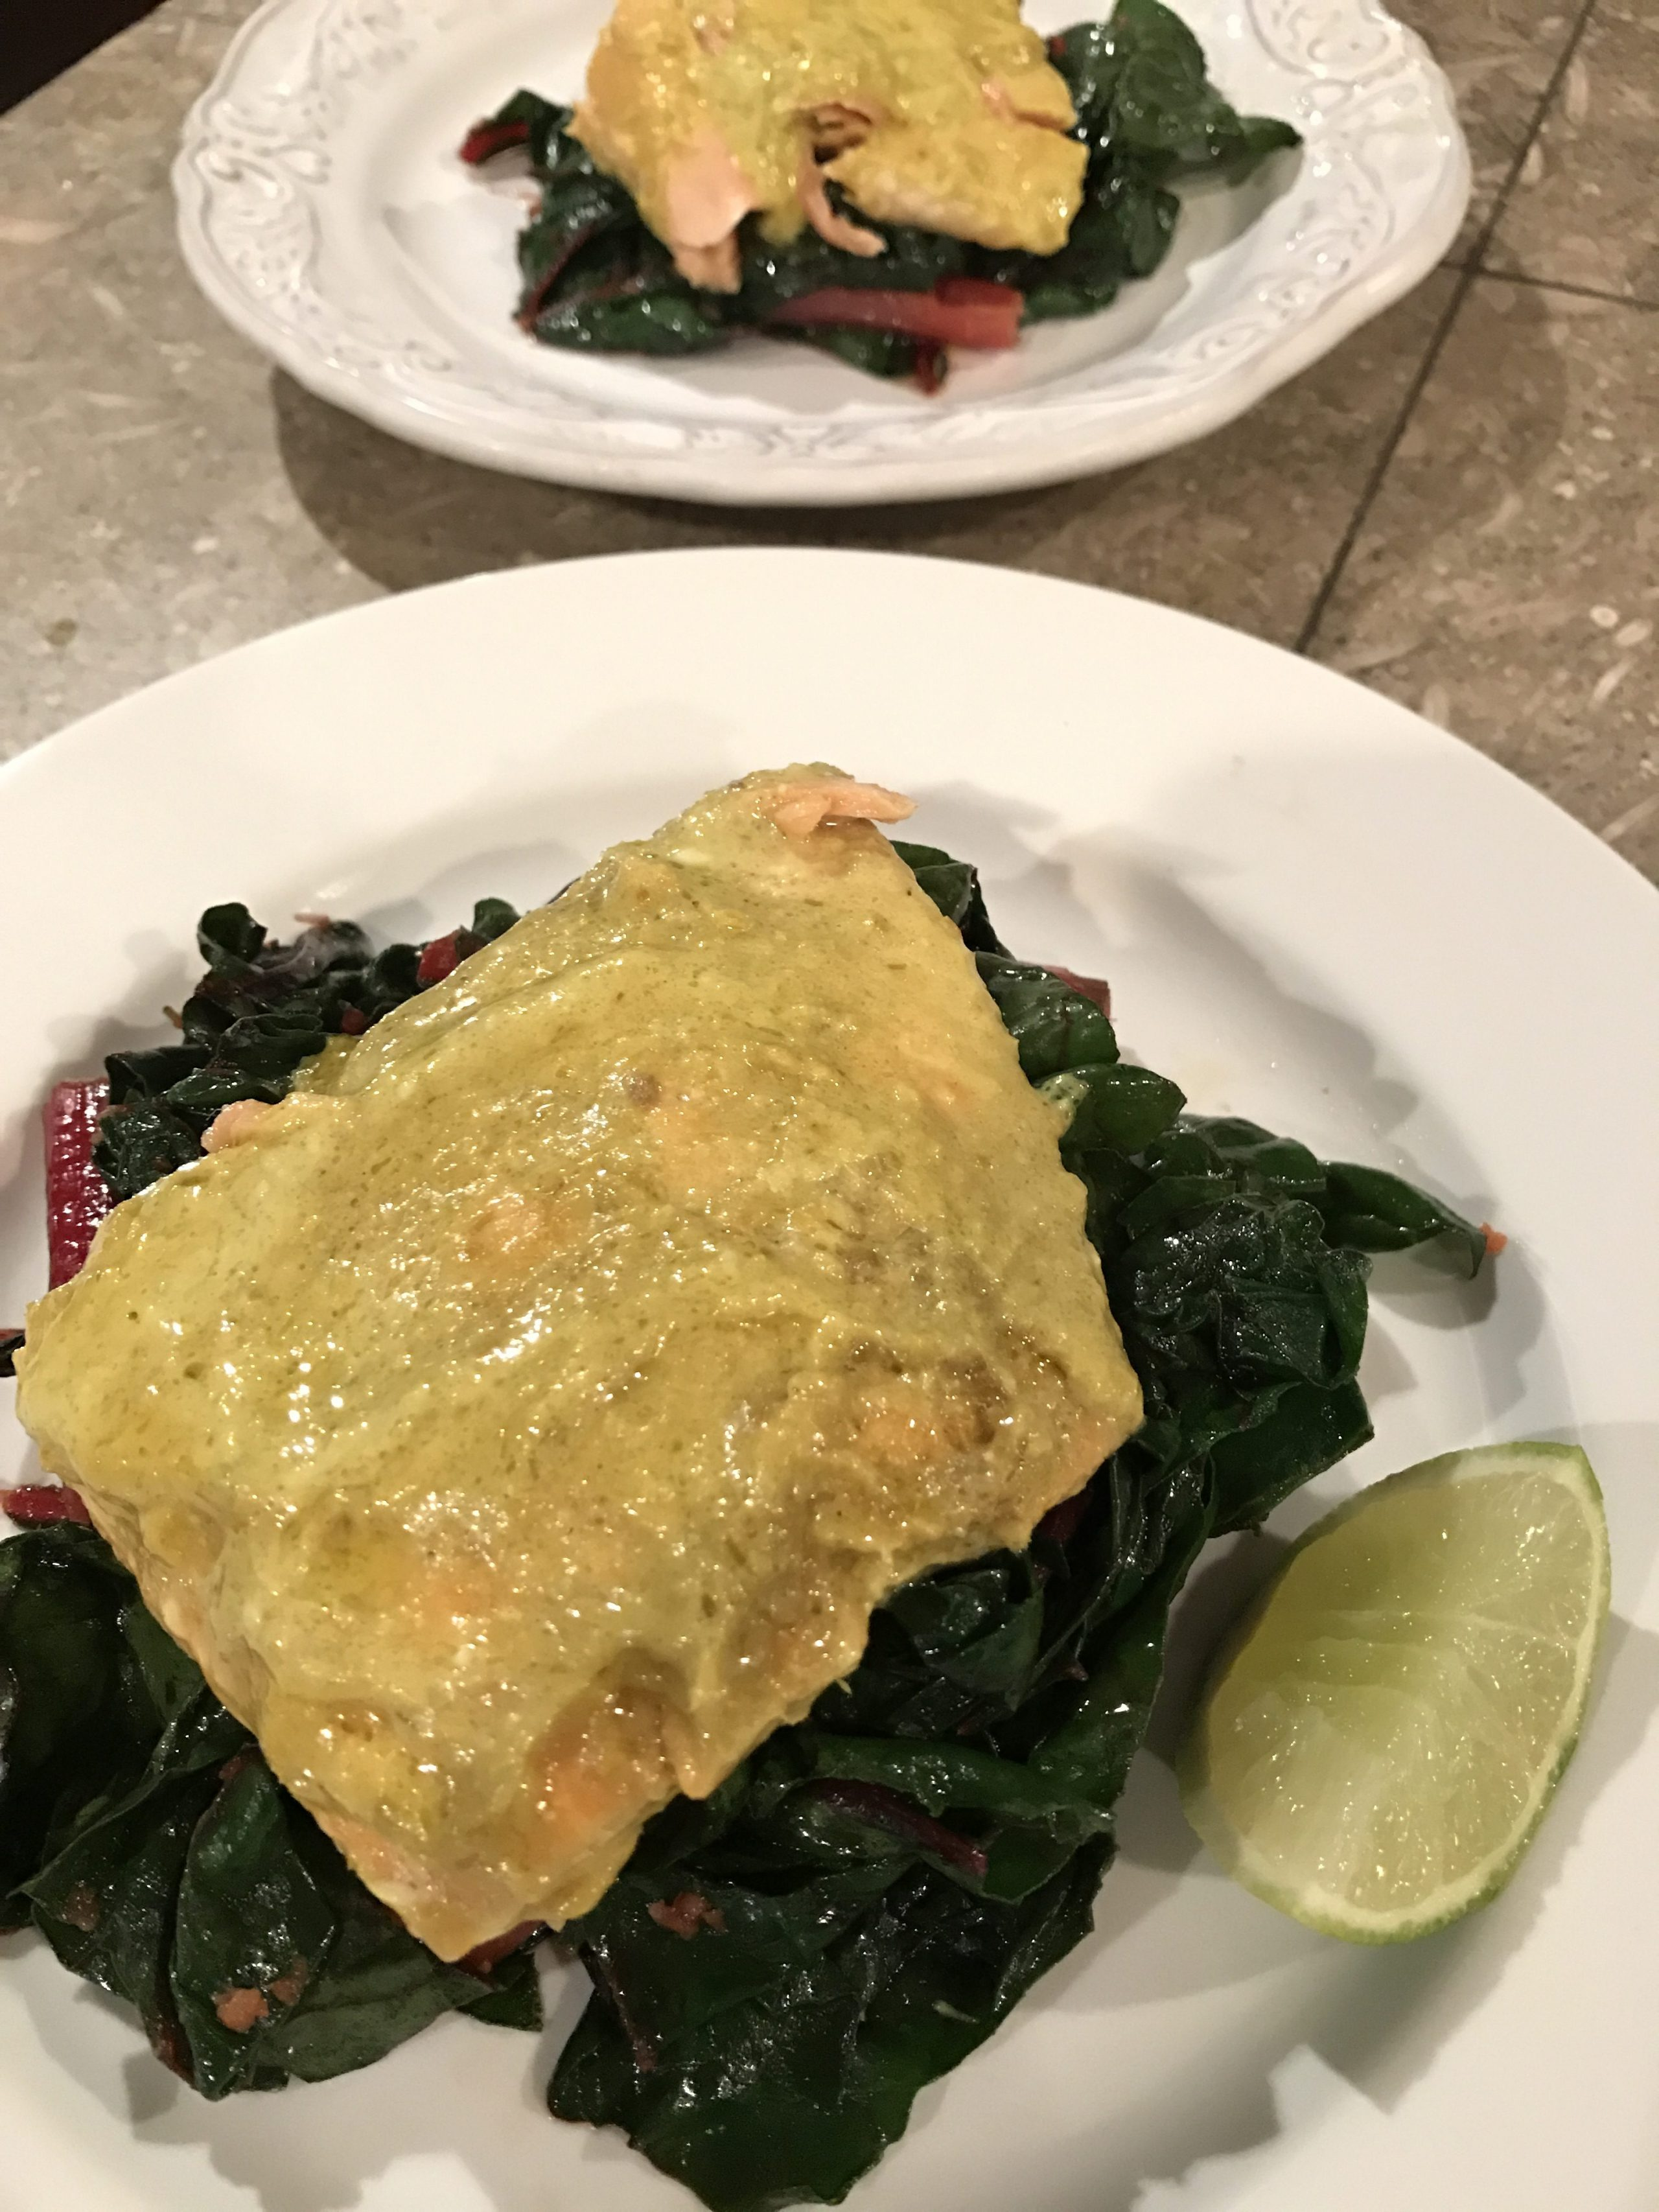 Sunbasket Southeast Asian coconut-poached salmon with red chard